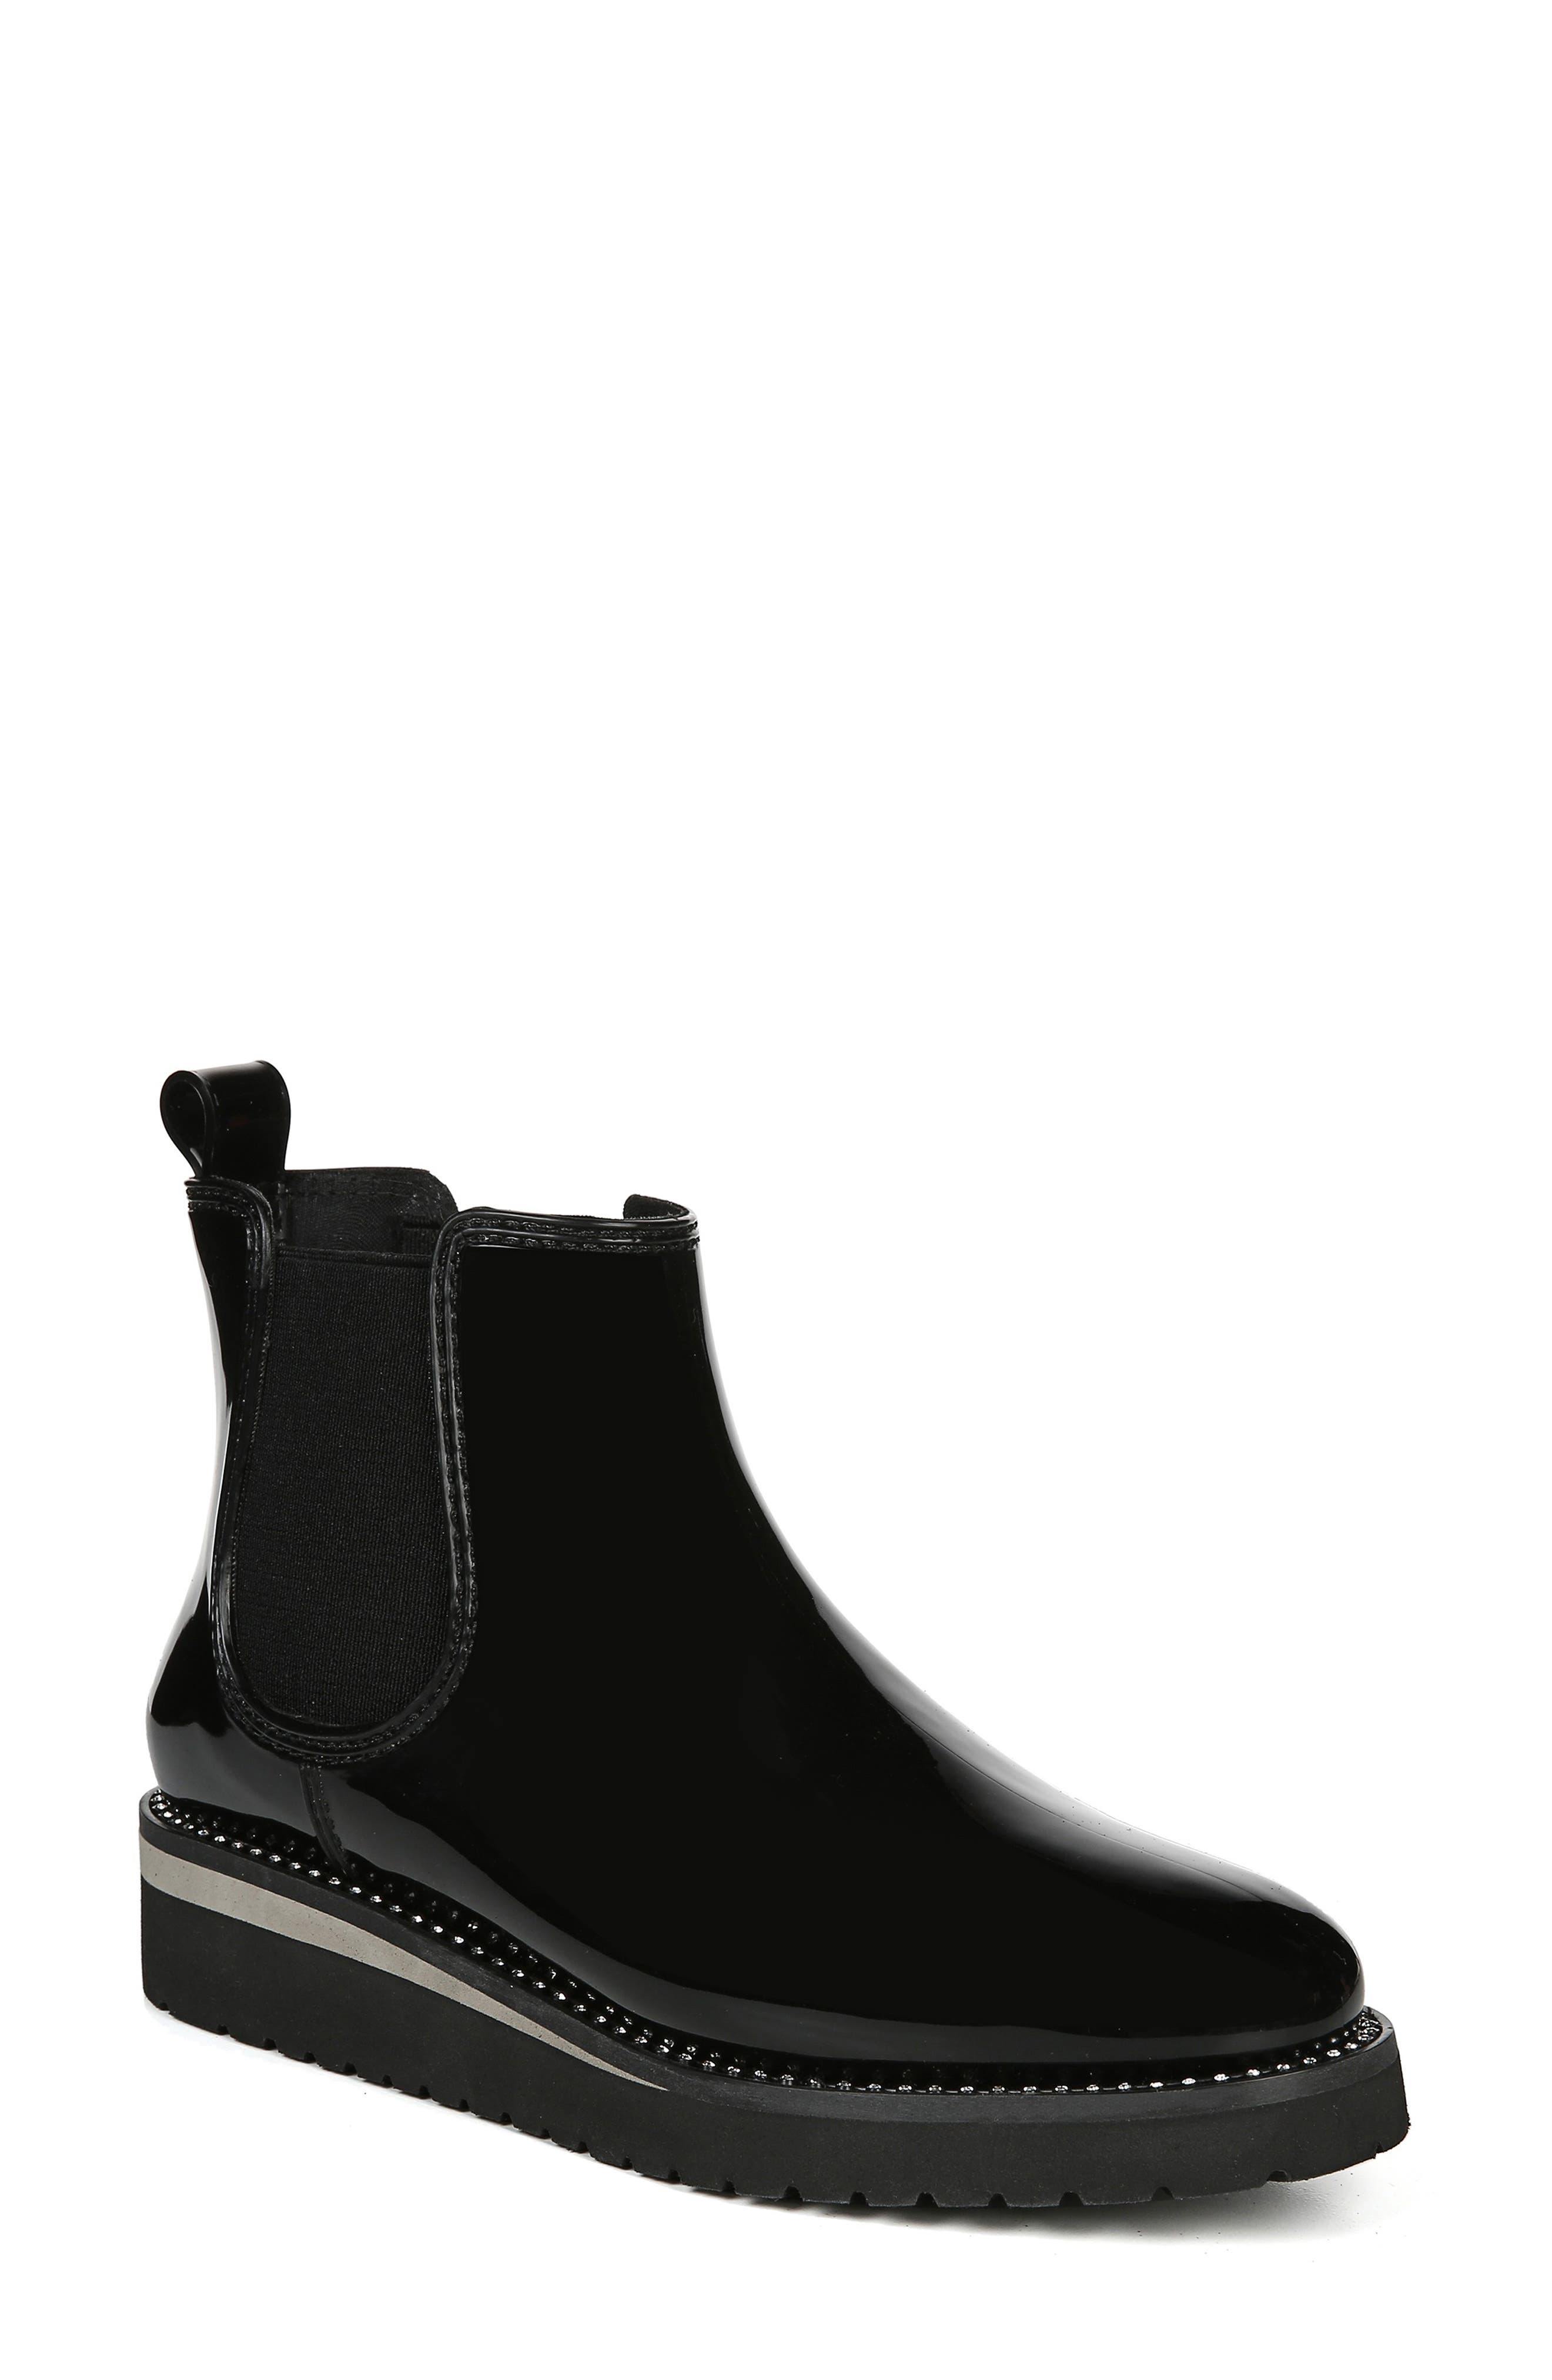 Luna Waterproof Chelsea Boot,                             Main thumbnail 1, color,                             BLACK